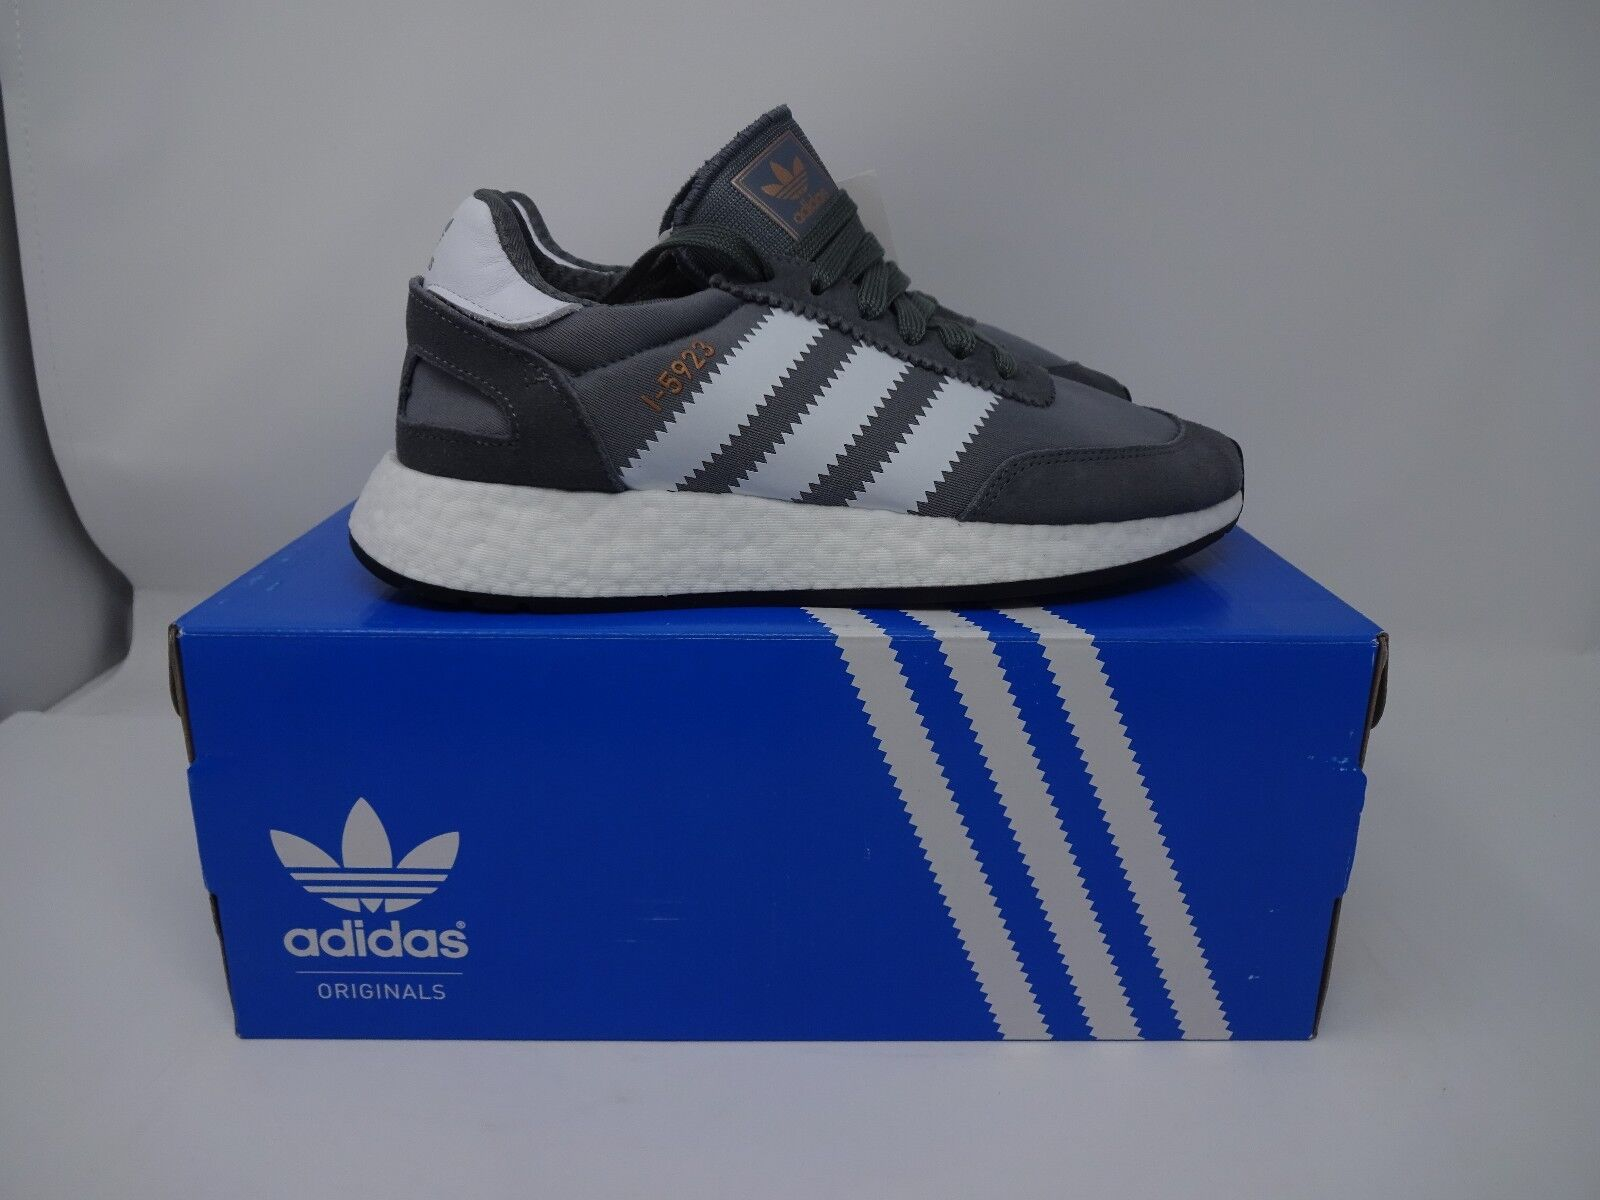 ADIDAS INIKI - RUNNER BOOST I 5923 - INIKI GREY / Weiß BNIB UK VARIOUS SIZES 9f3a37